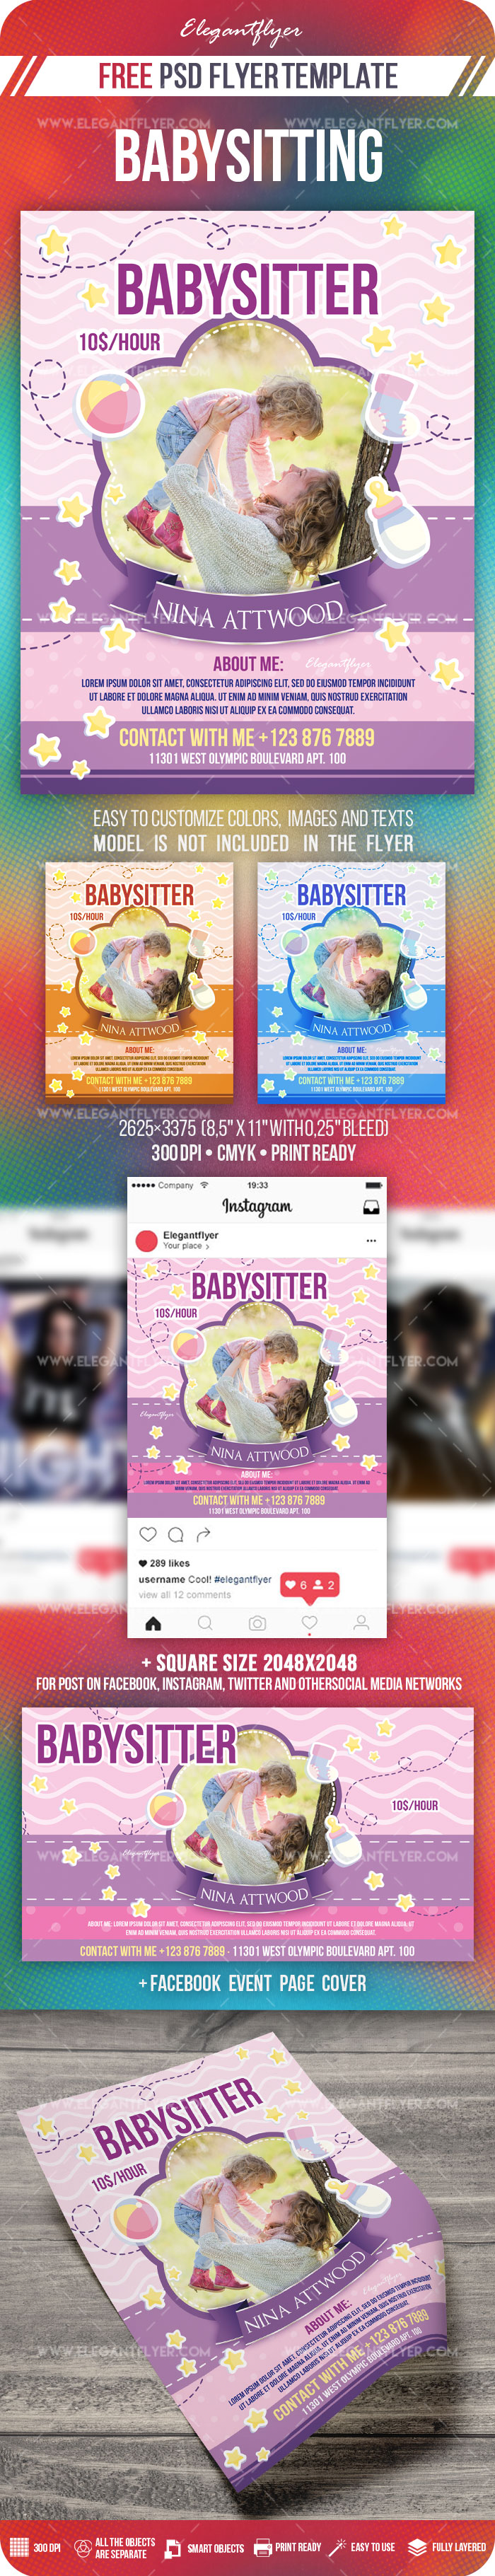 Babysitting – Free PSD Flyer Template + Facebook Cover + Instagram Post